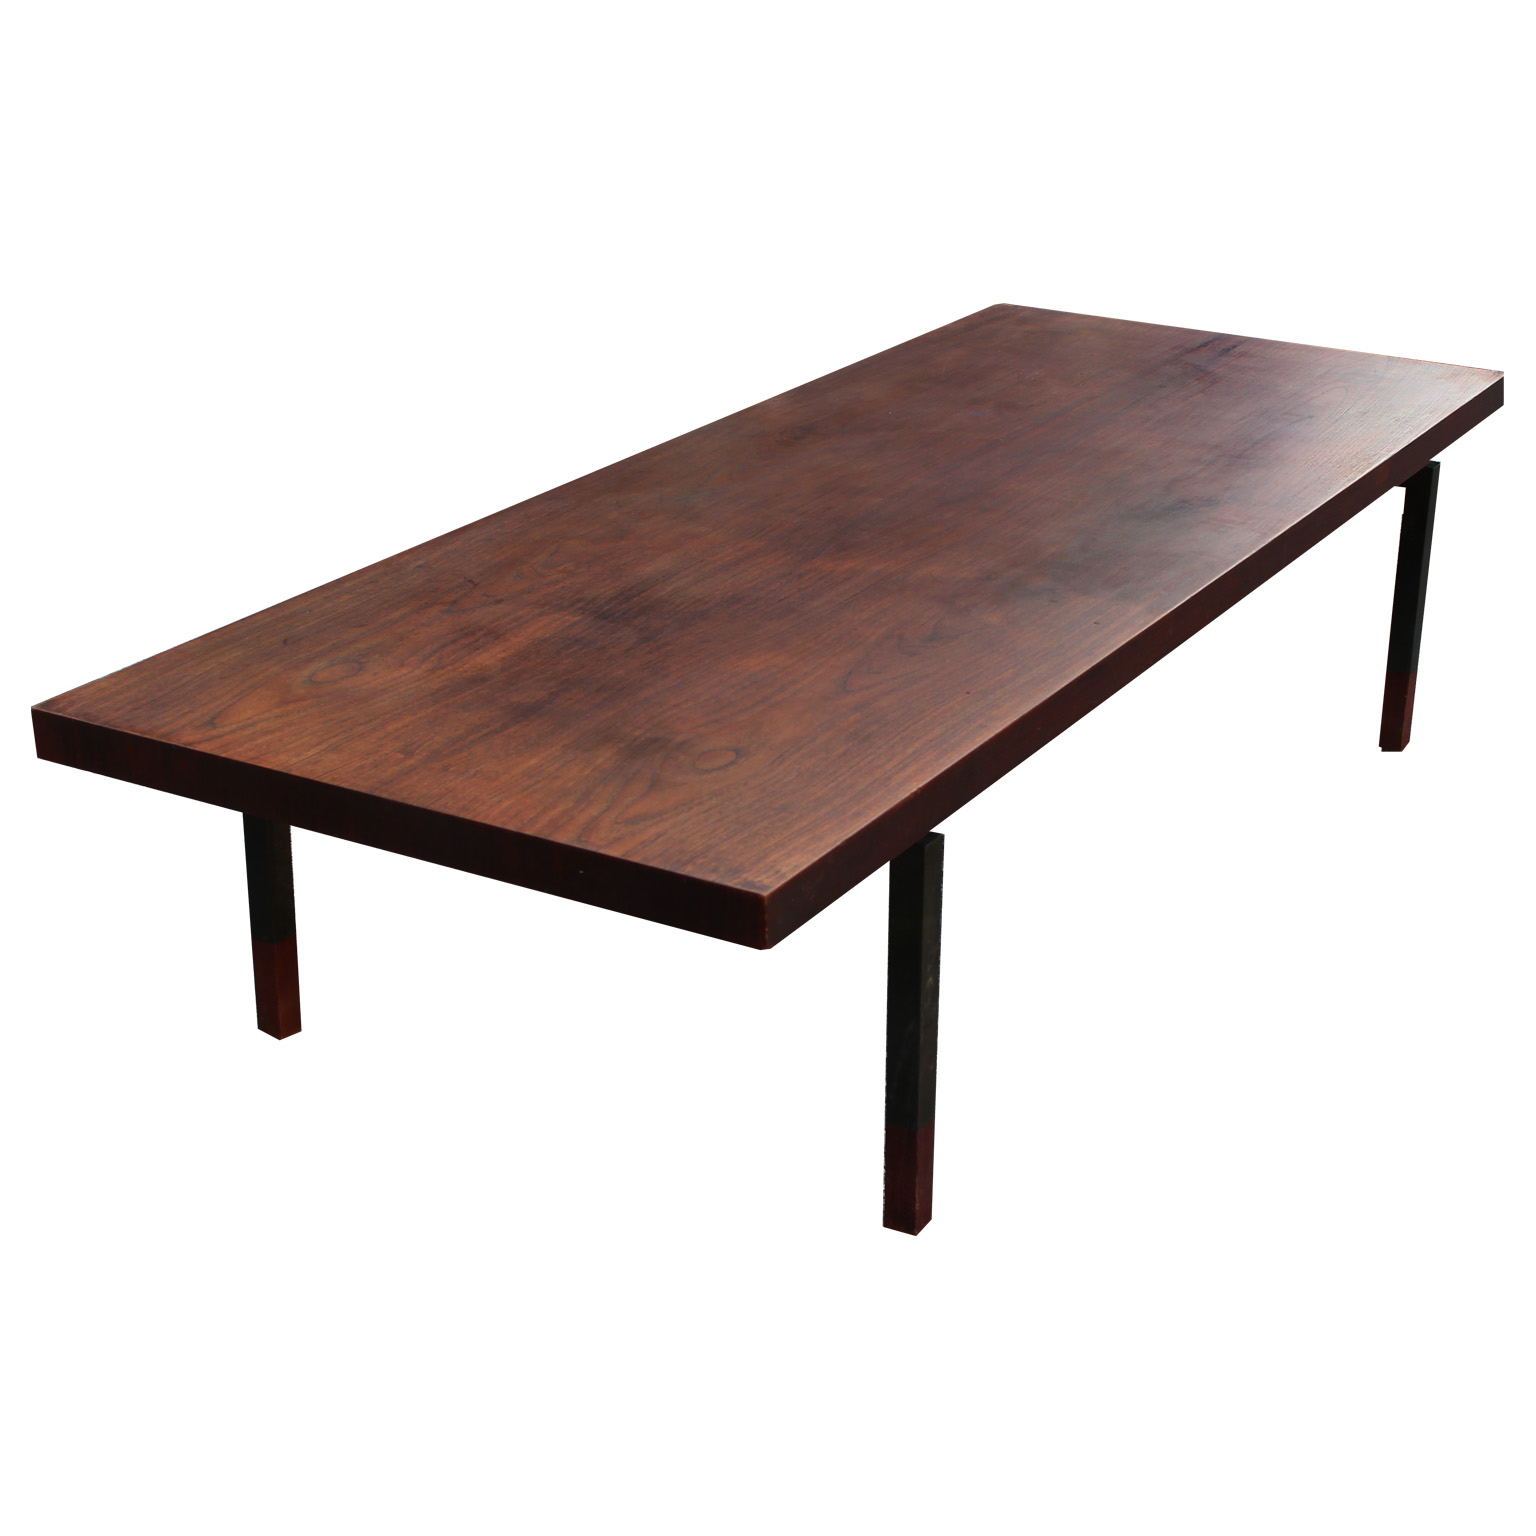 Johannes Aasbjerg Danish Teak Coffee Table